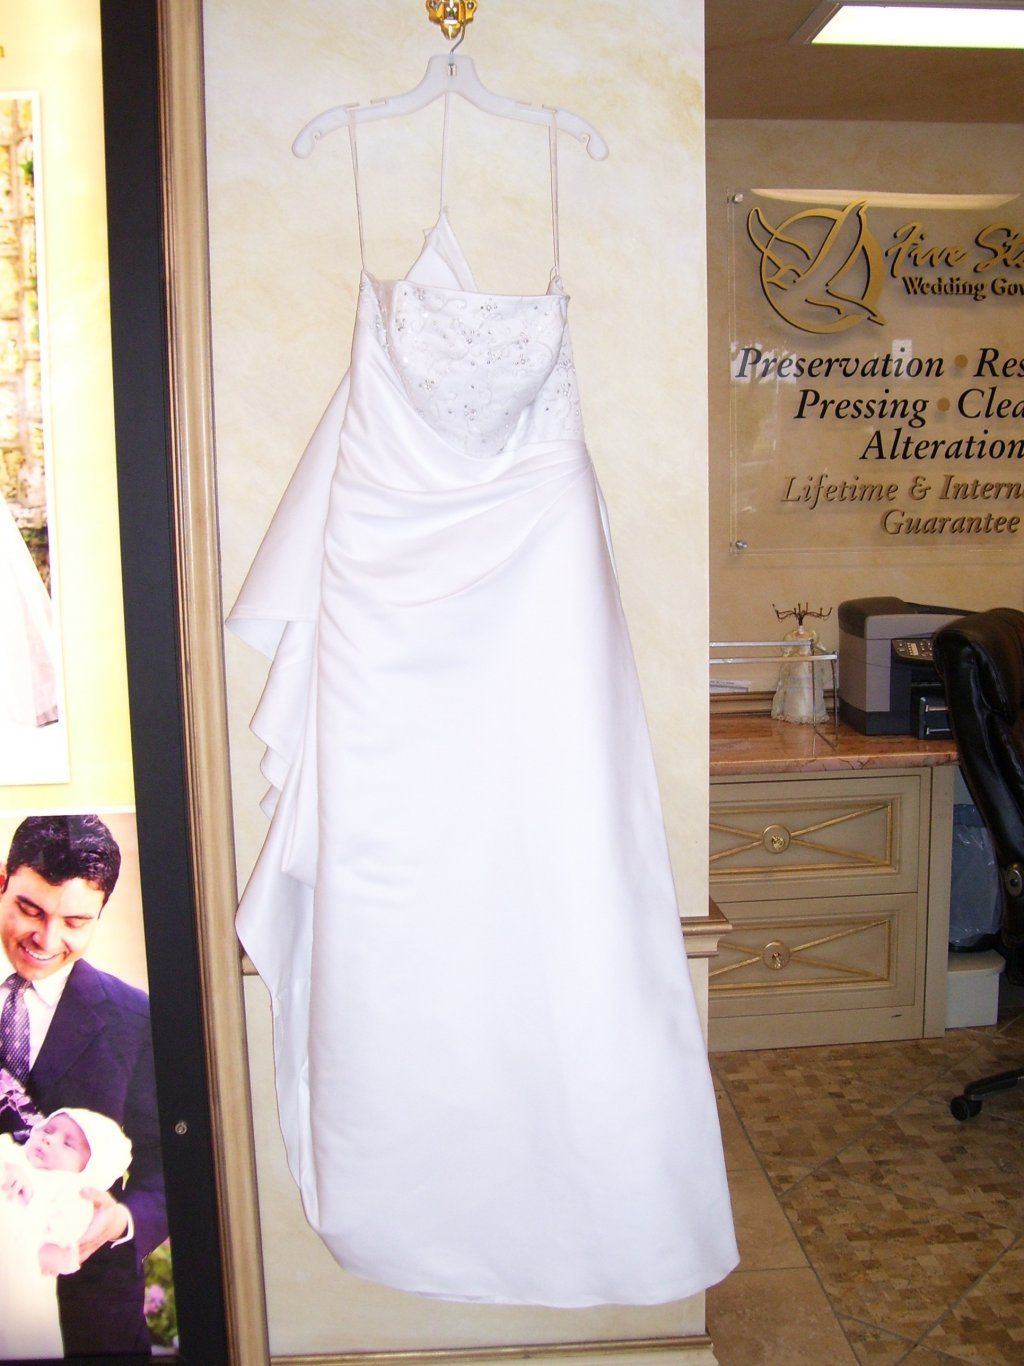 55+ Wedding Dress Cleaning Kent - Country Dresses for Weddings Check ...